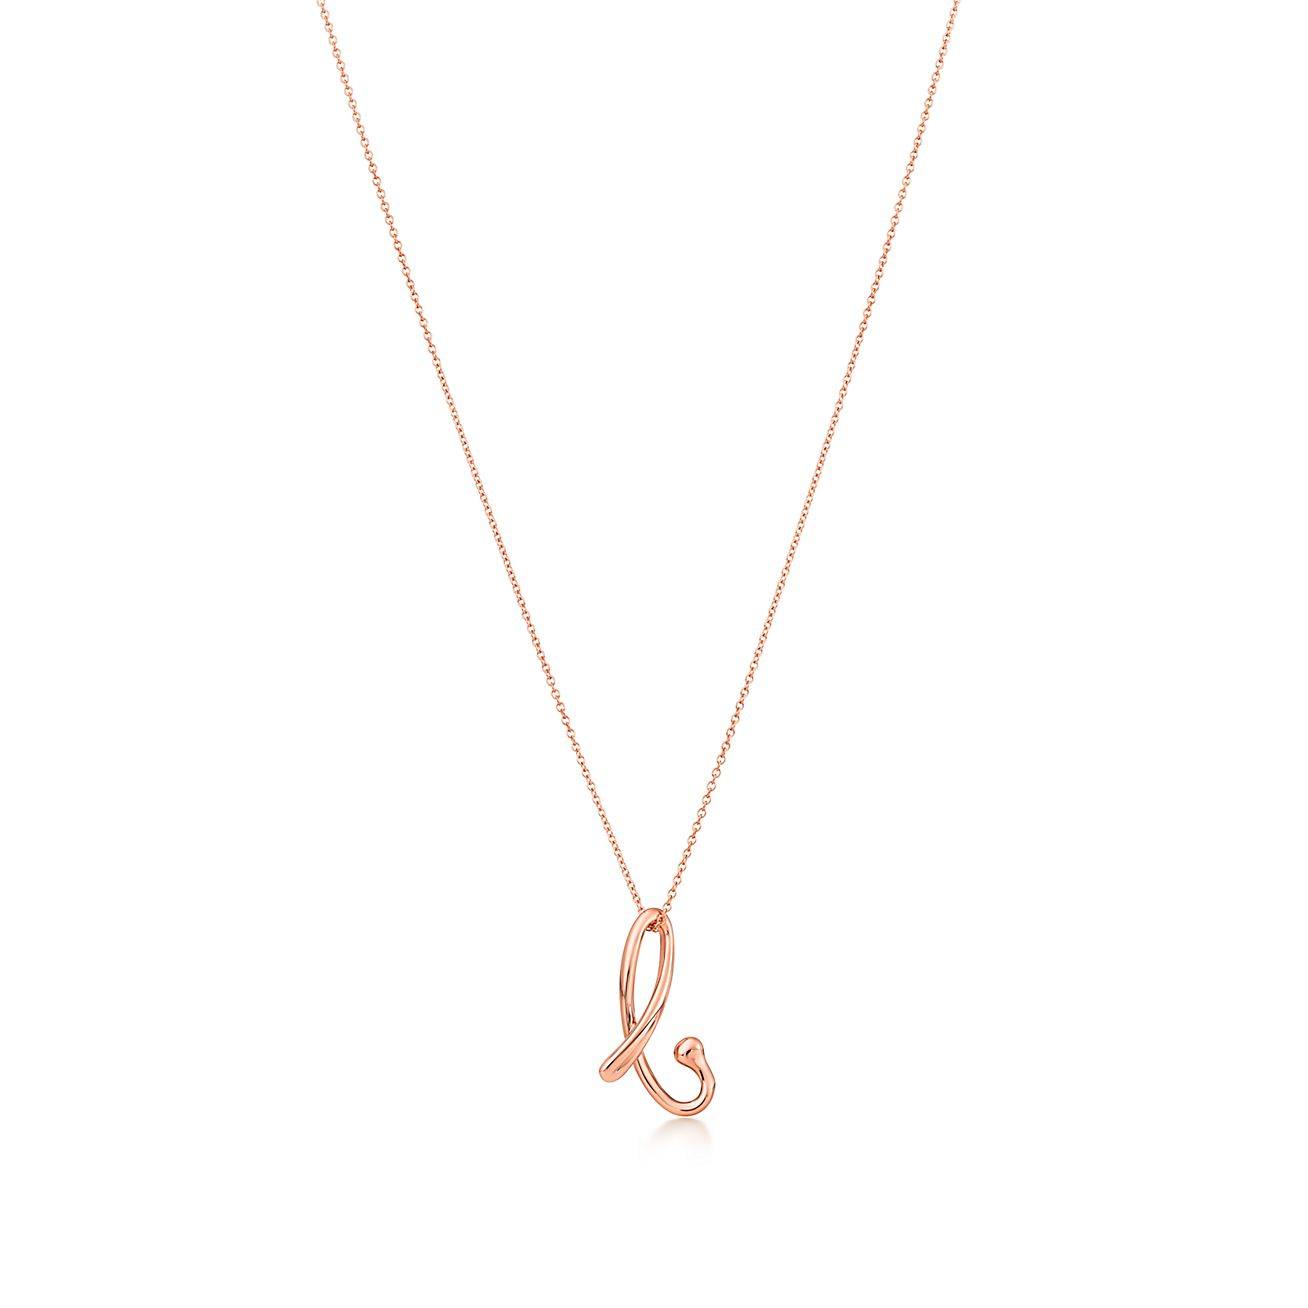 Elsa Peretti Alphabet pendant in 18k rose gold Letters A-Z available - Size H Tiffany & Co.